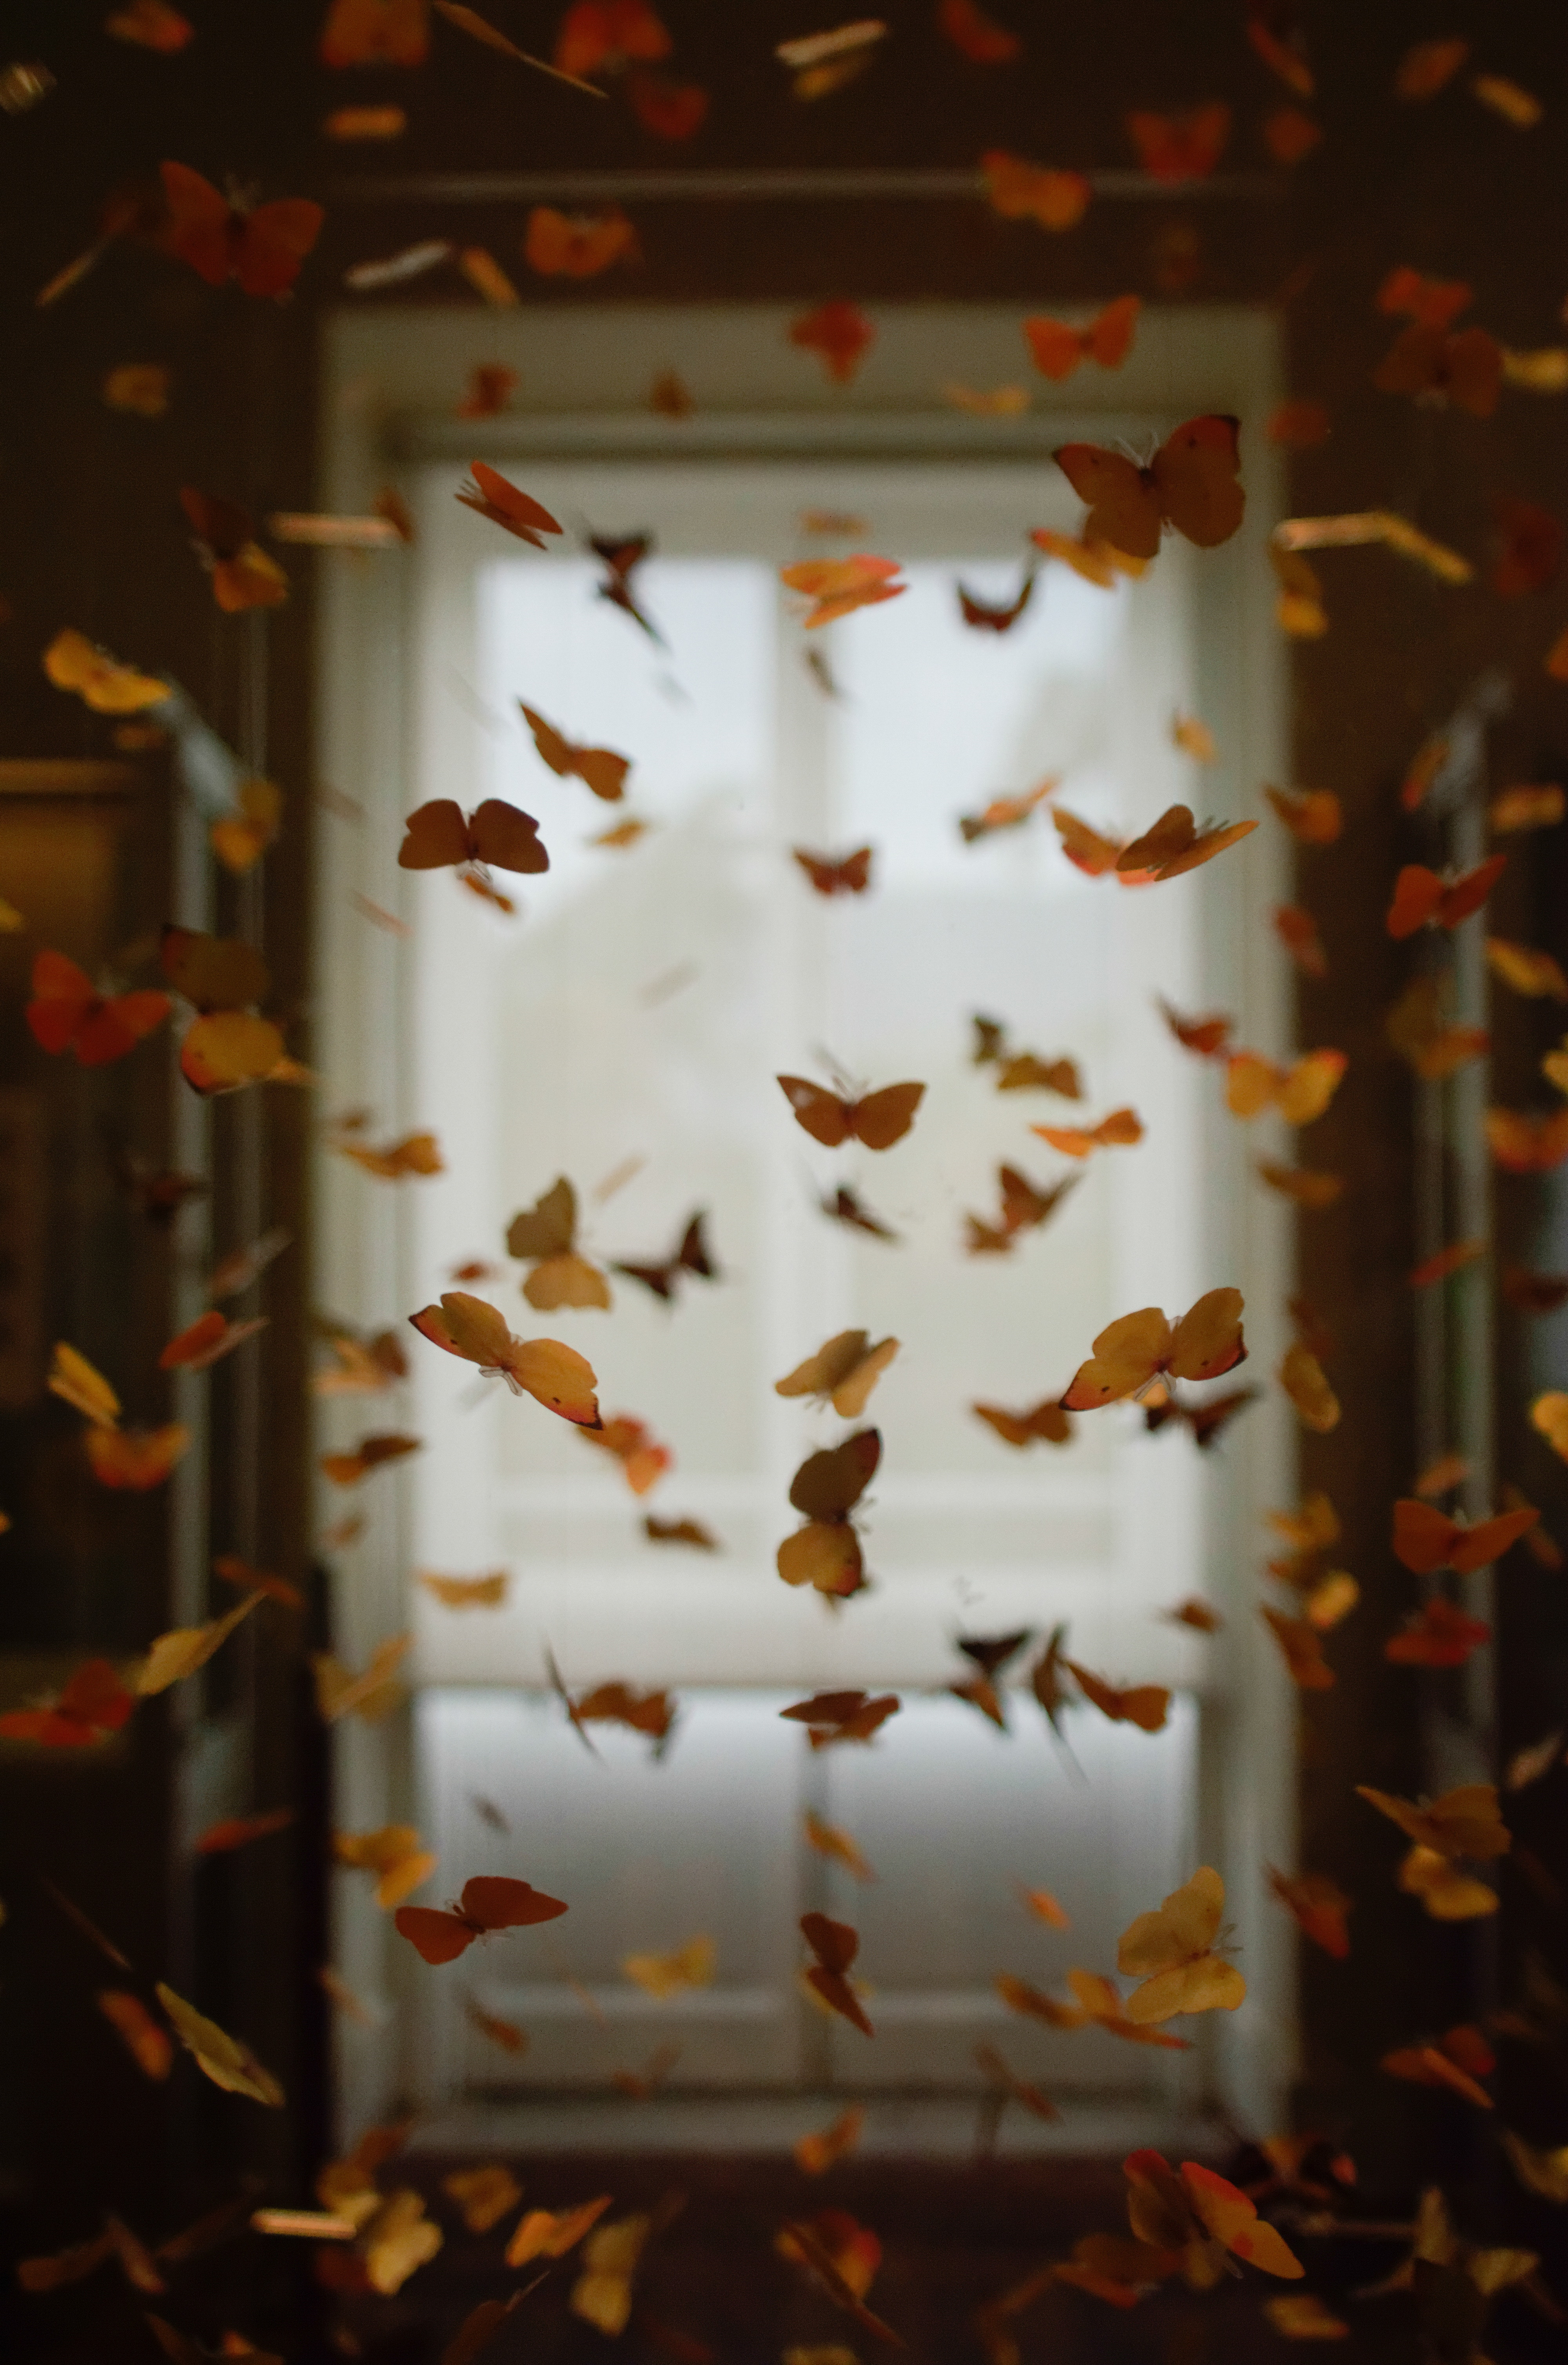 100226 Screensavers and Wallpapers Butterflies for phone. Download Miscellanea, Miscellaneous, Butterflies, Premises, Room, Decoration, Registration, Typography, Blur, Smooth pictures for free